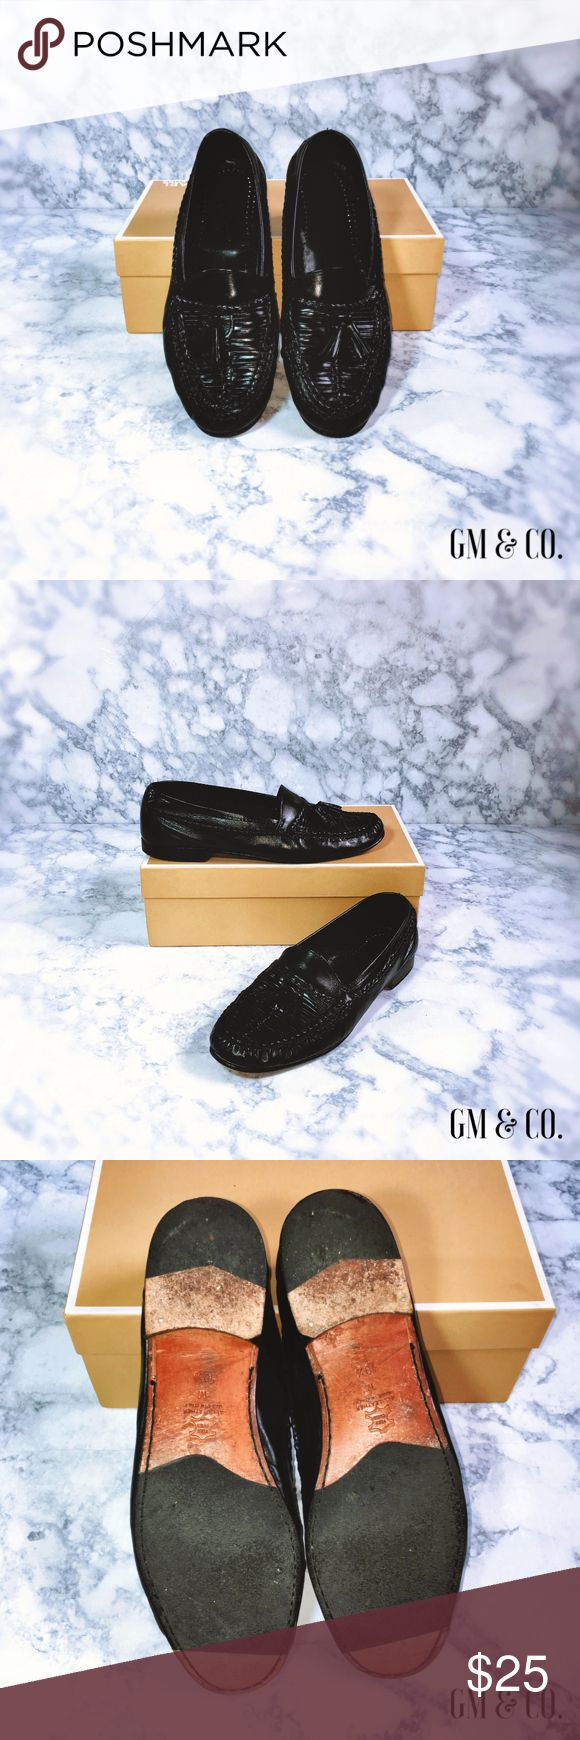 💥🇺🇸SALE🇺🇸💥 Vito Rufolo Men's Dress Shoes Polished black, 💯 leather, made in Italy. Gently worn by my Dad, as seen in photos.   Thank you for stopping by my closet! Please let me know if you have any questions or if I may assist you with anything! GM Vito Rufolo Shoes Loafers & Slip-Ons